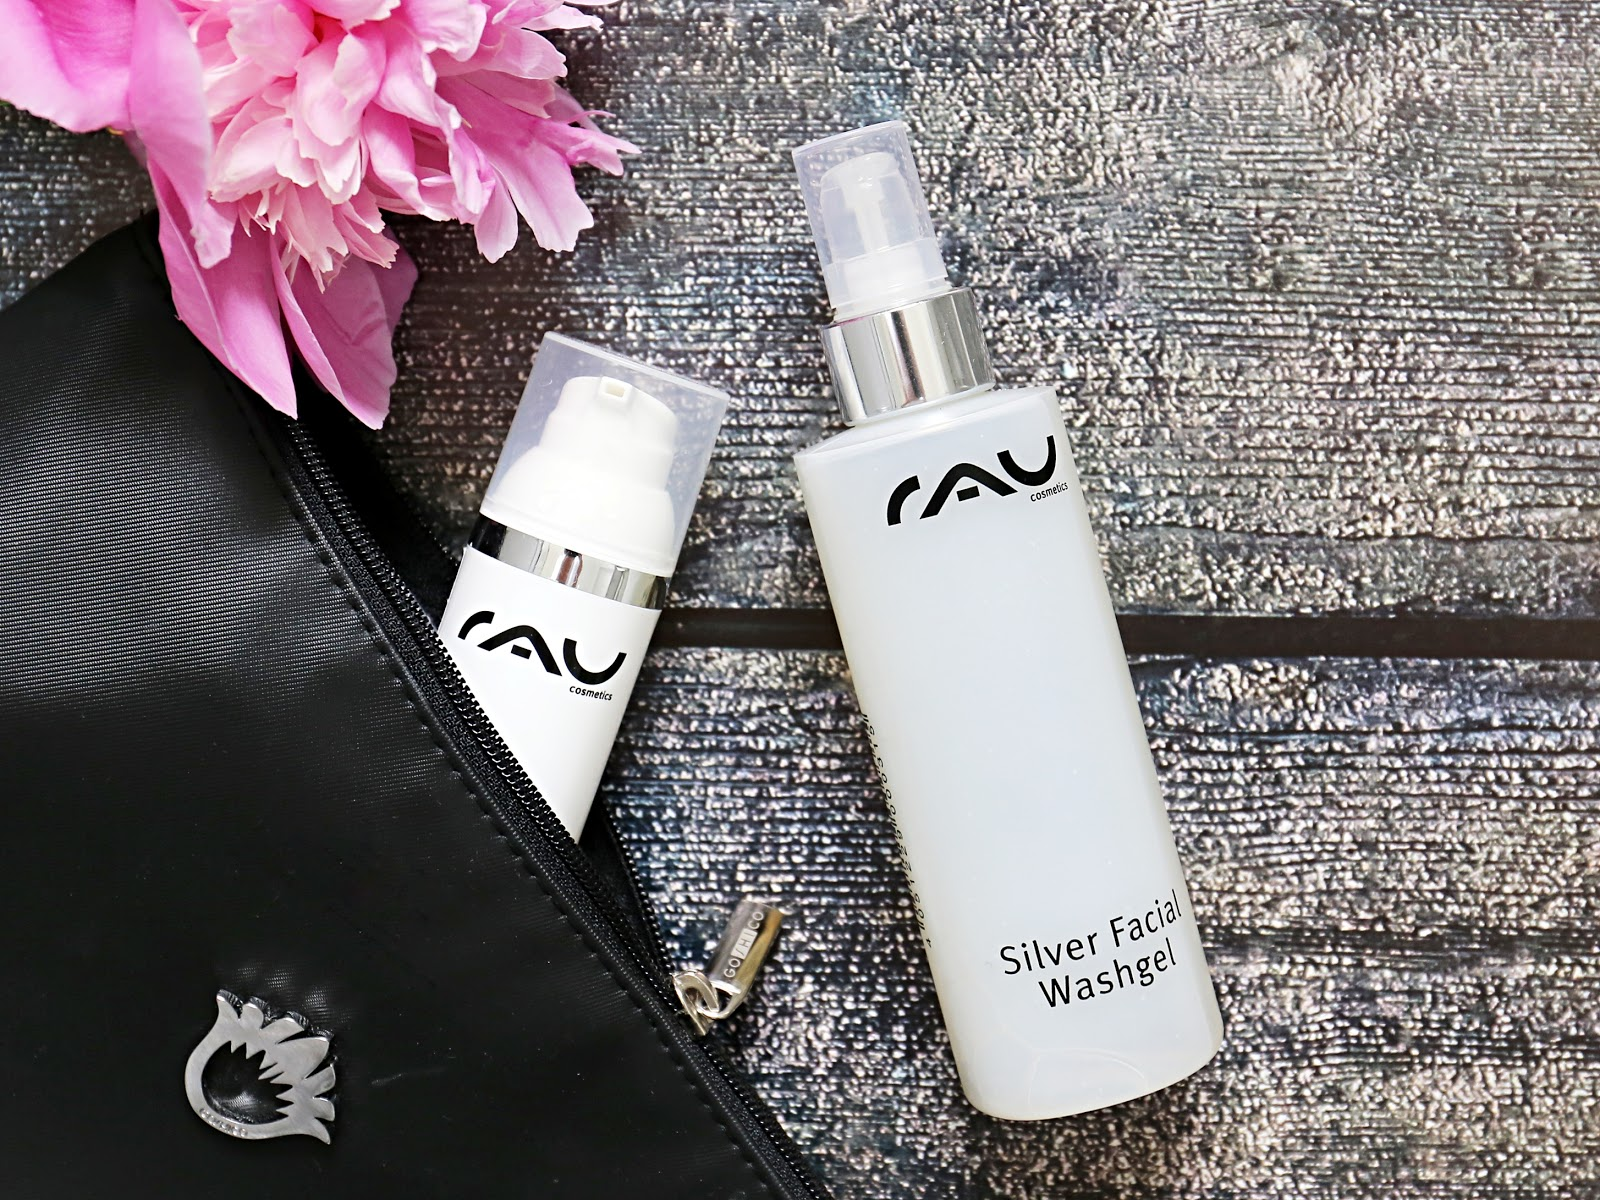 RAU Silver Facial Washgel